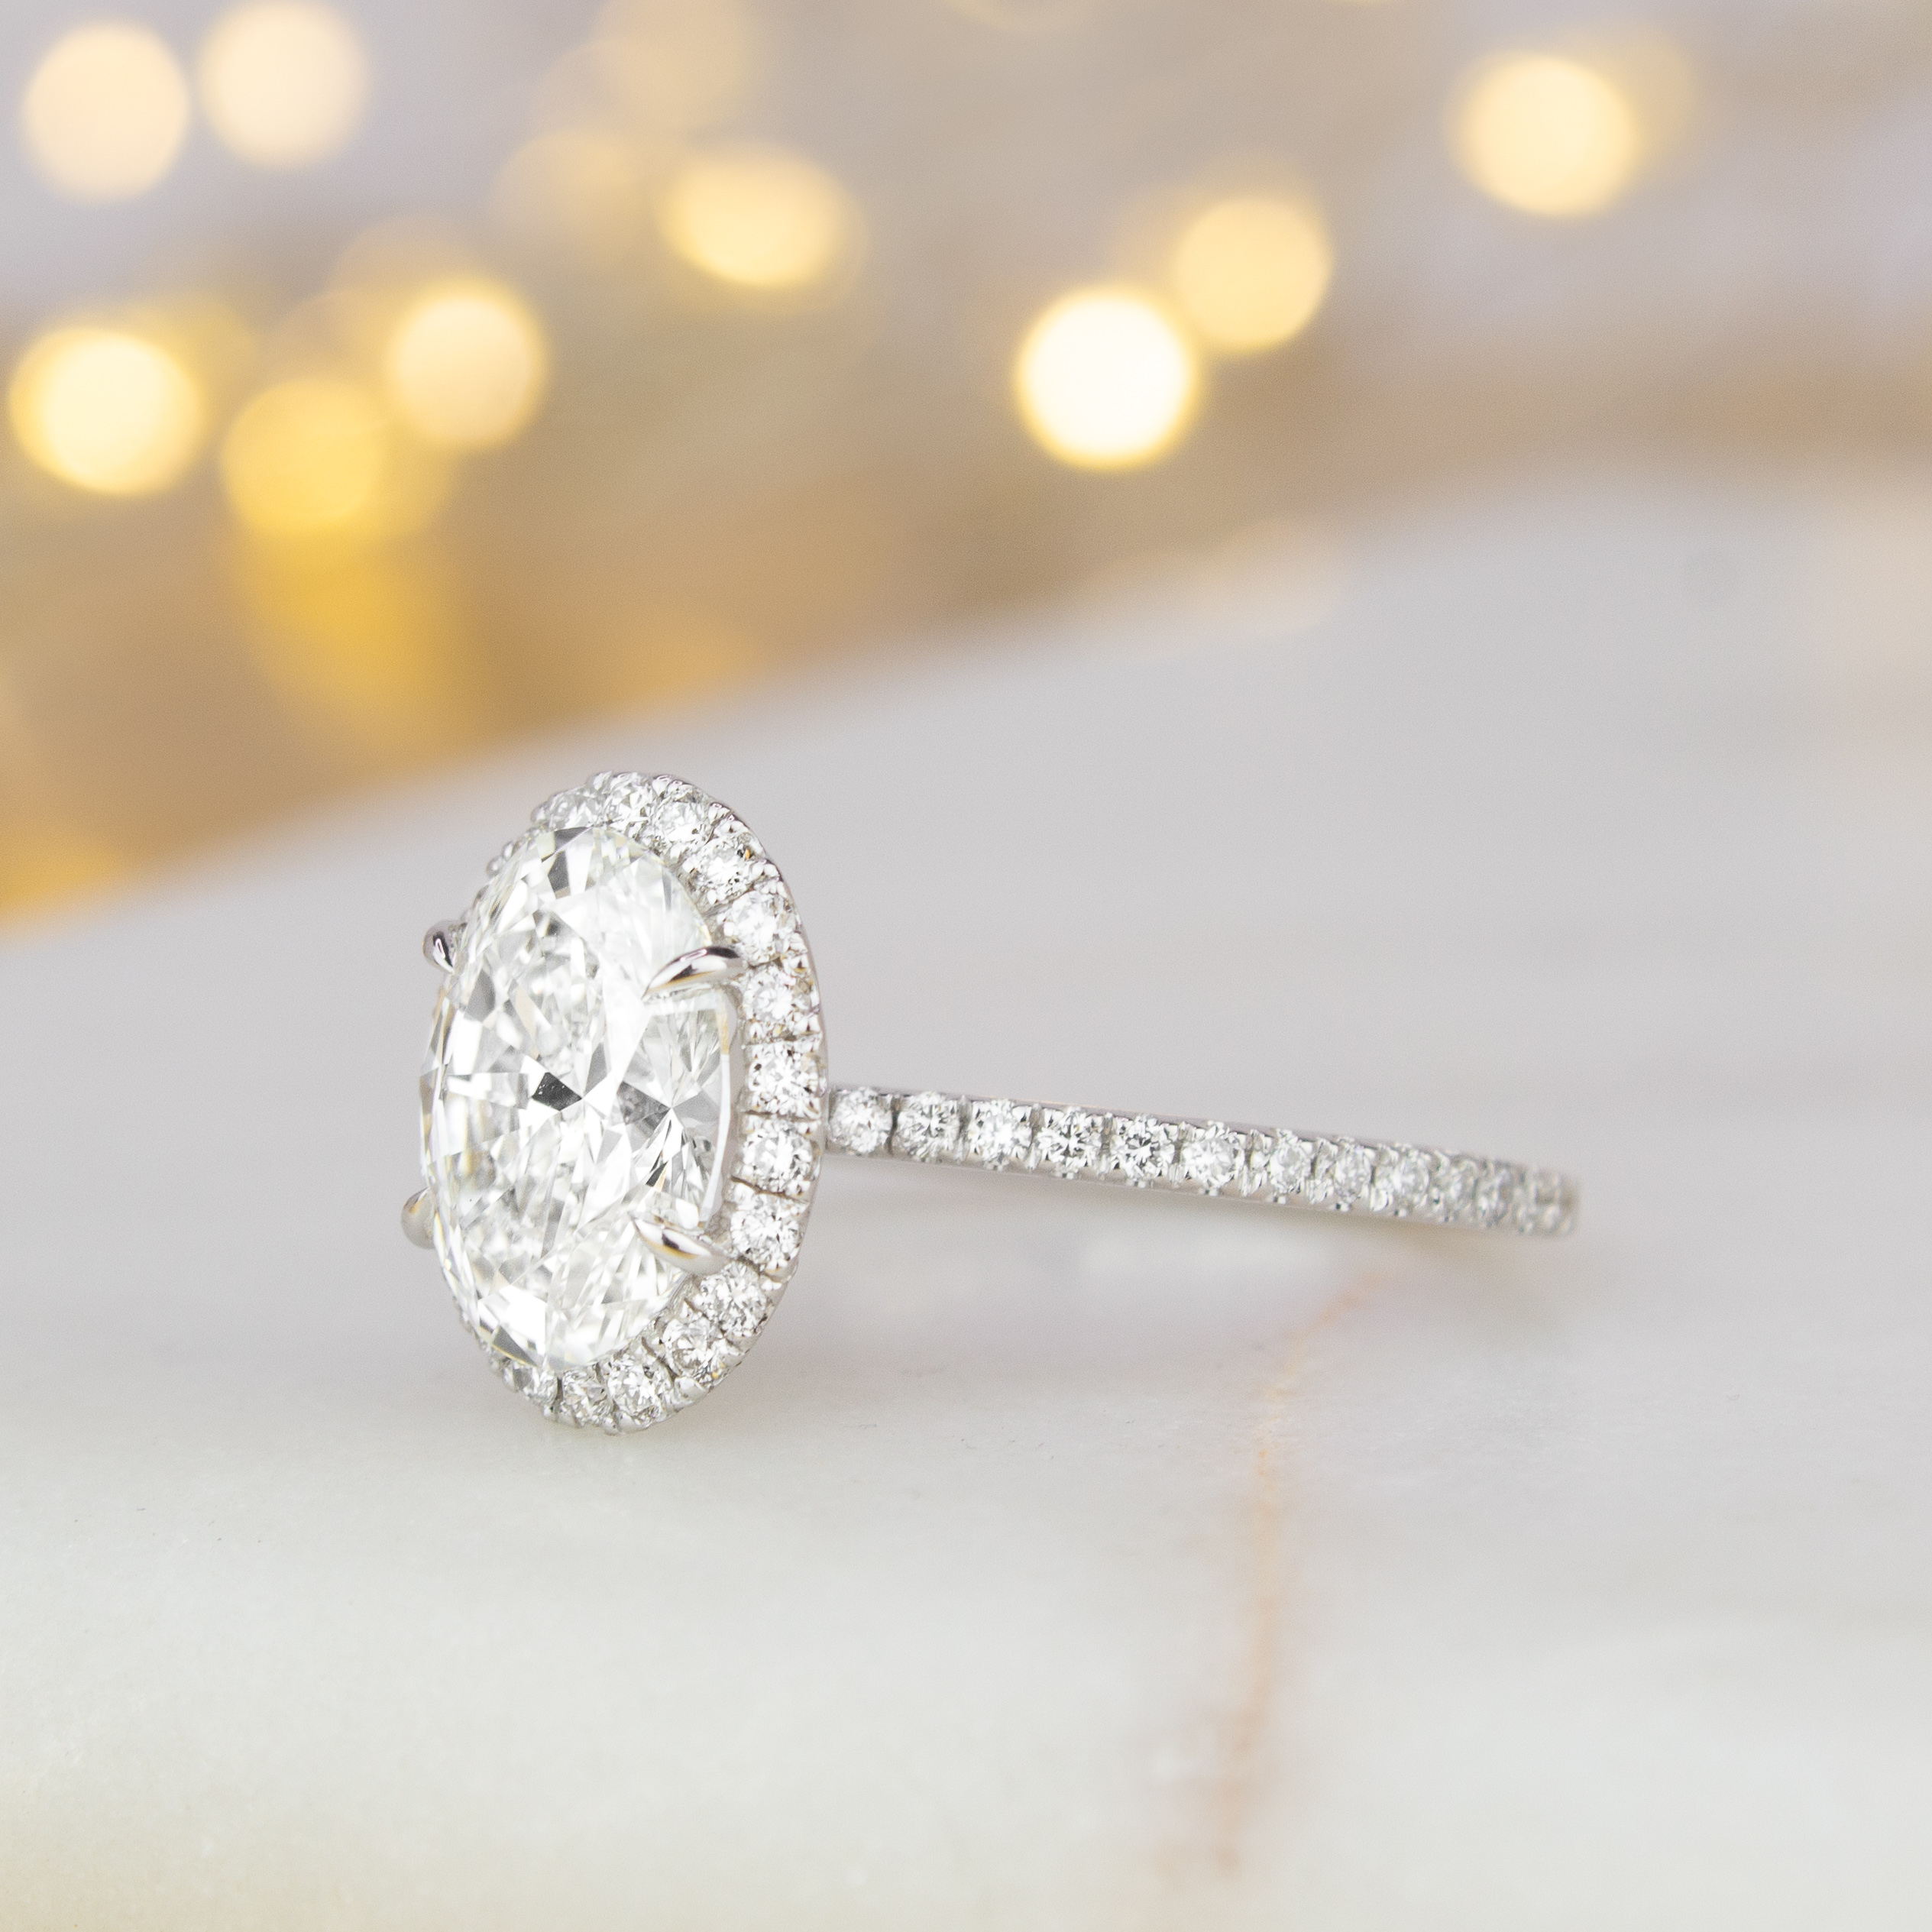 Sparkling Pavé Engagement Rings | Brilliant Earth With Regard To Latest Enhanced Blue Diamond Vintage Style Anniversary Bands In White Gold (Gallery 12 of 25)